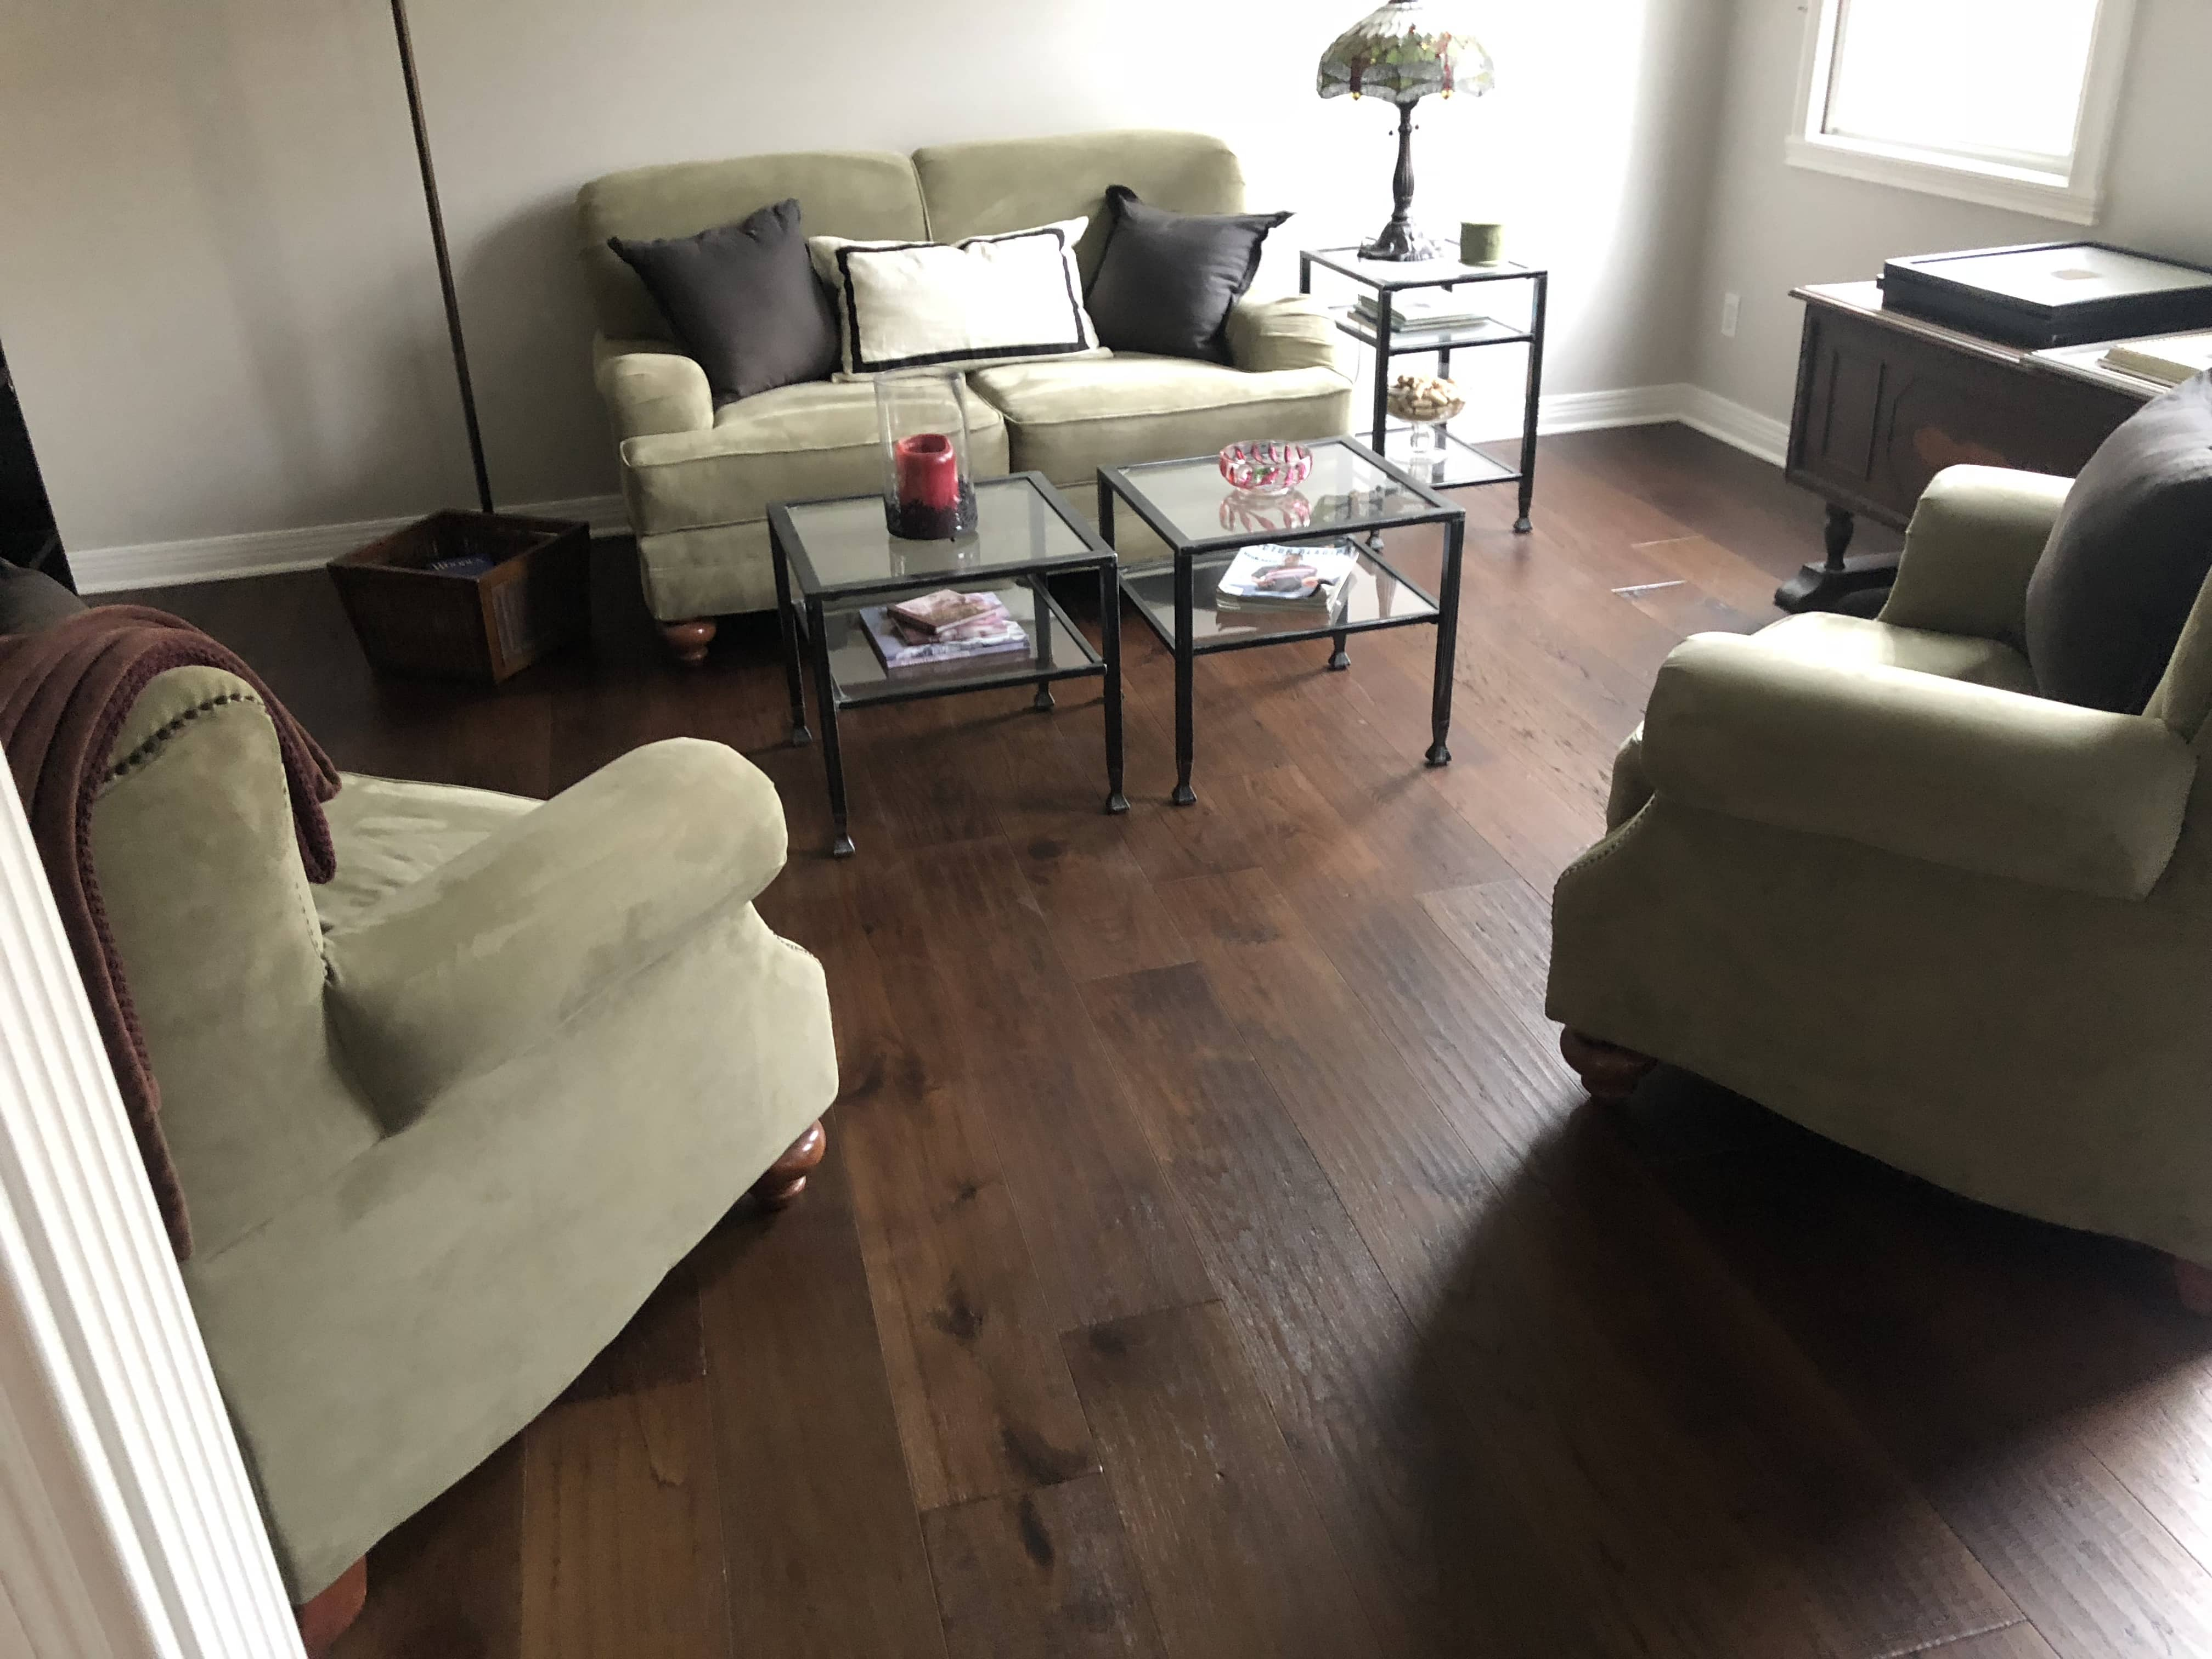 images of wood floors in living rooms decorating room with chairs only hardwood flooring zionsville floor installation new